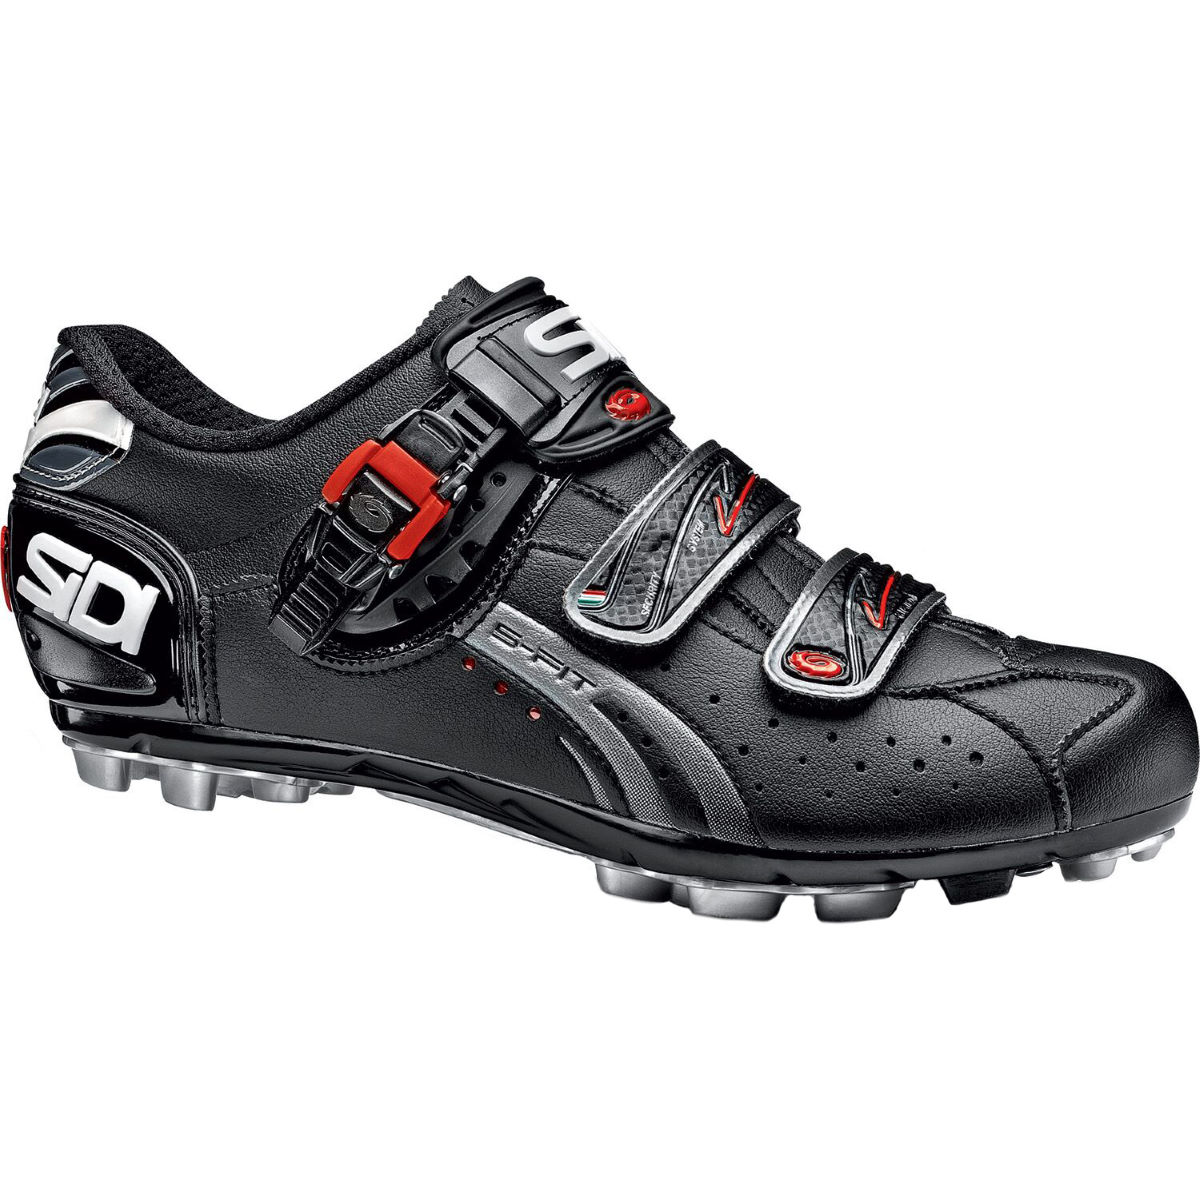 Sidi Dominator 5-Fit MTB Shoe - 45.00 Black/Black | Offroad Shoes